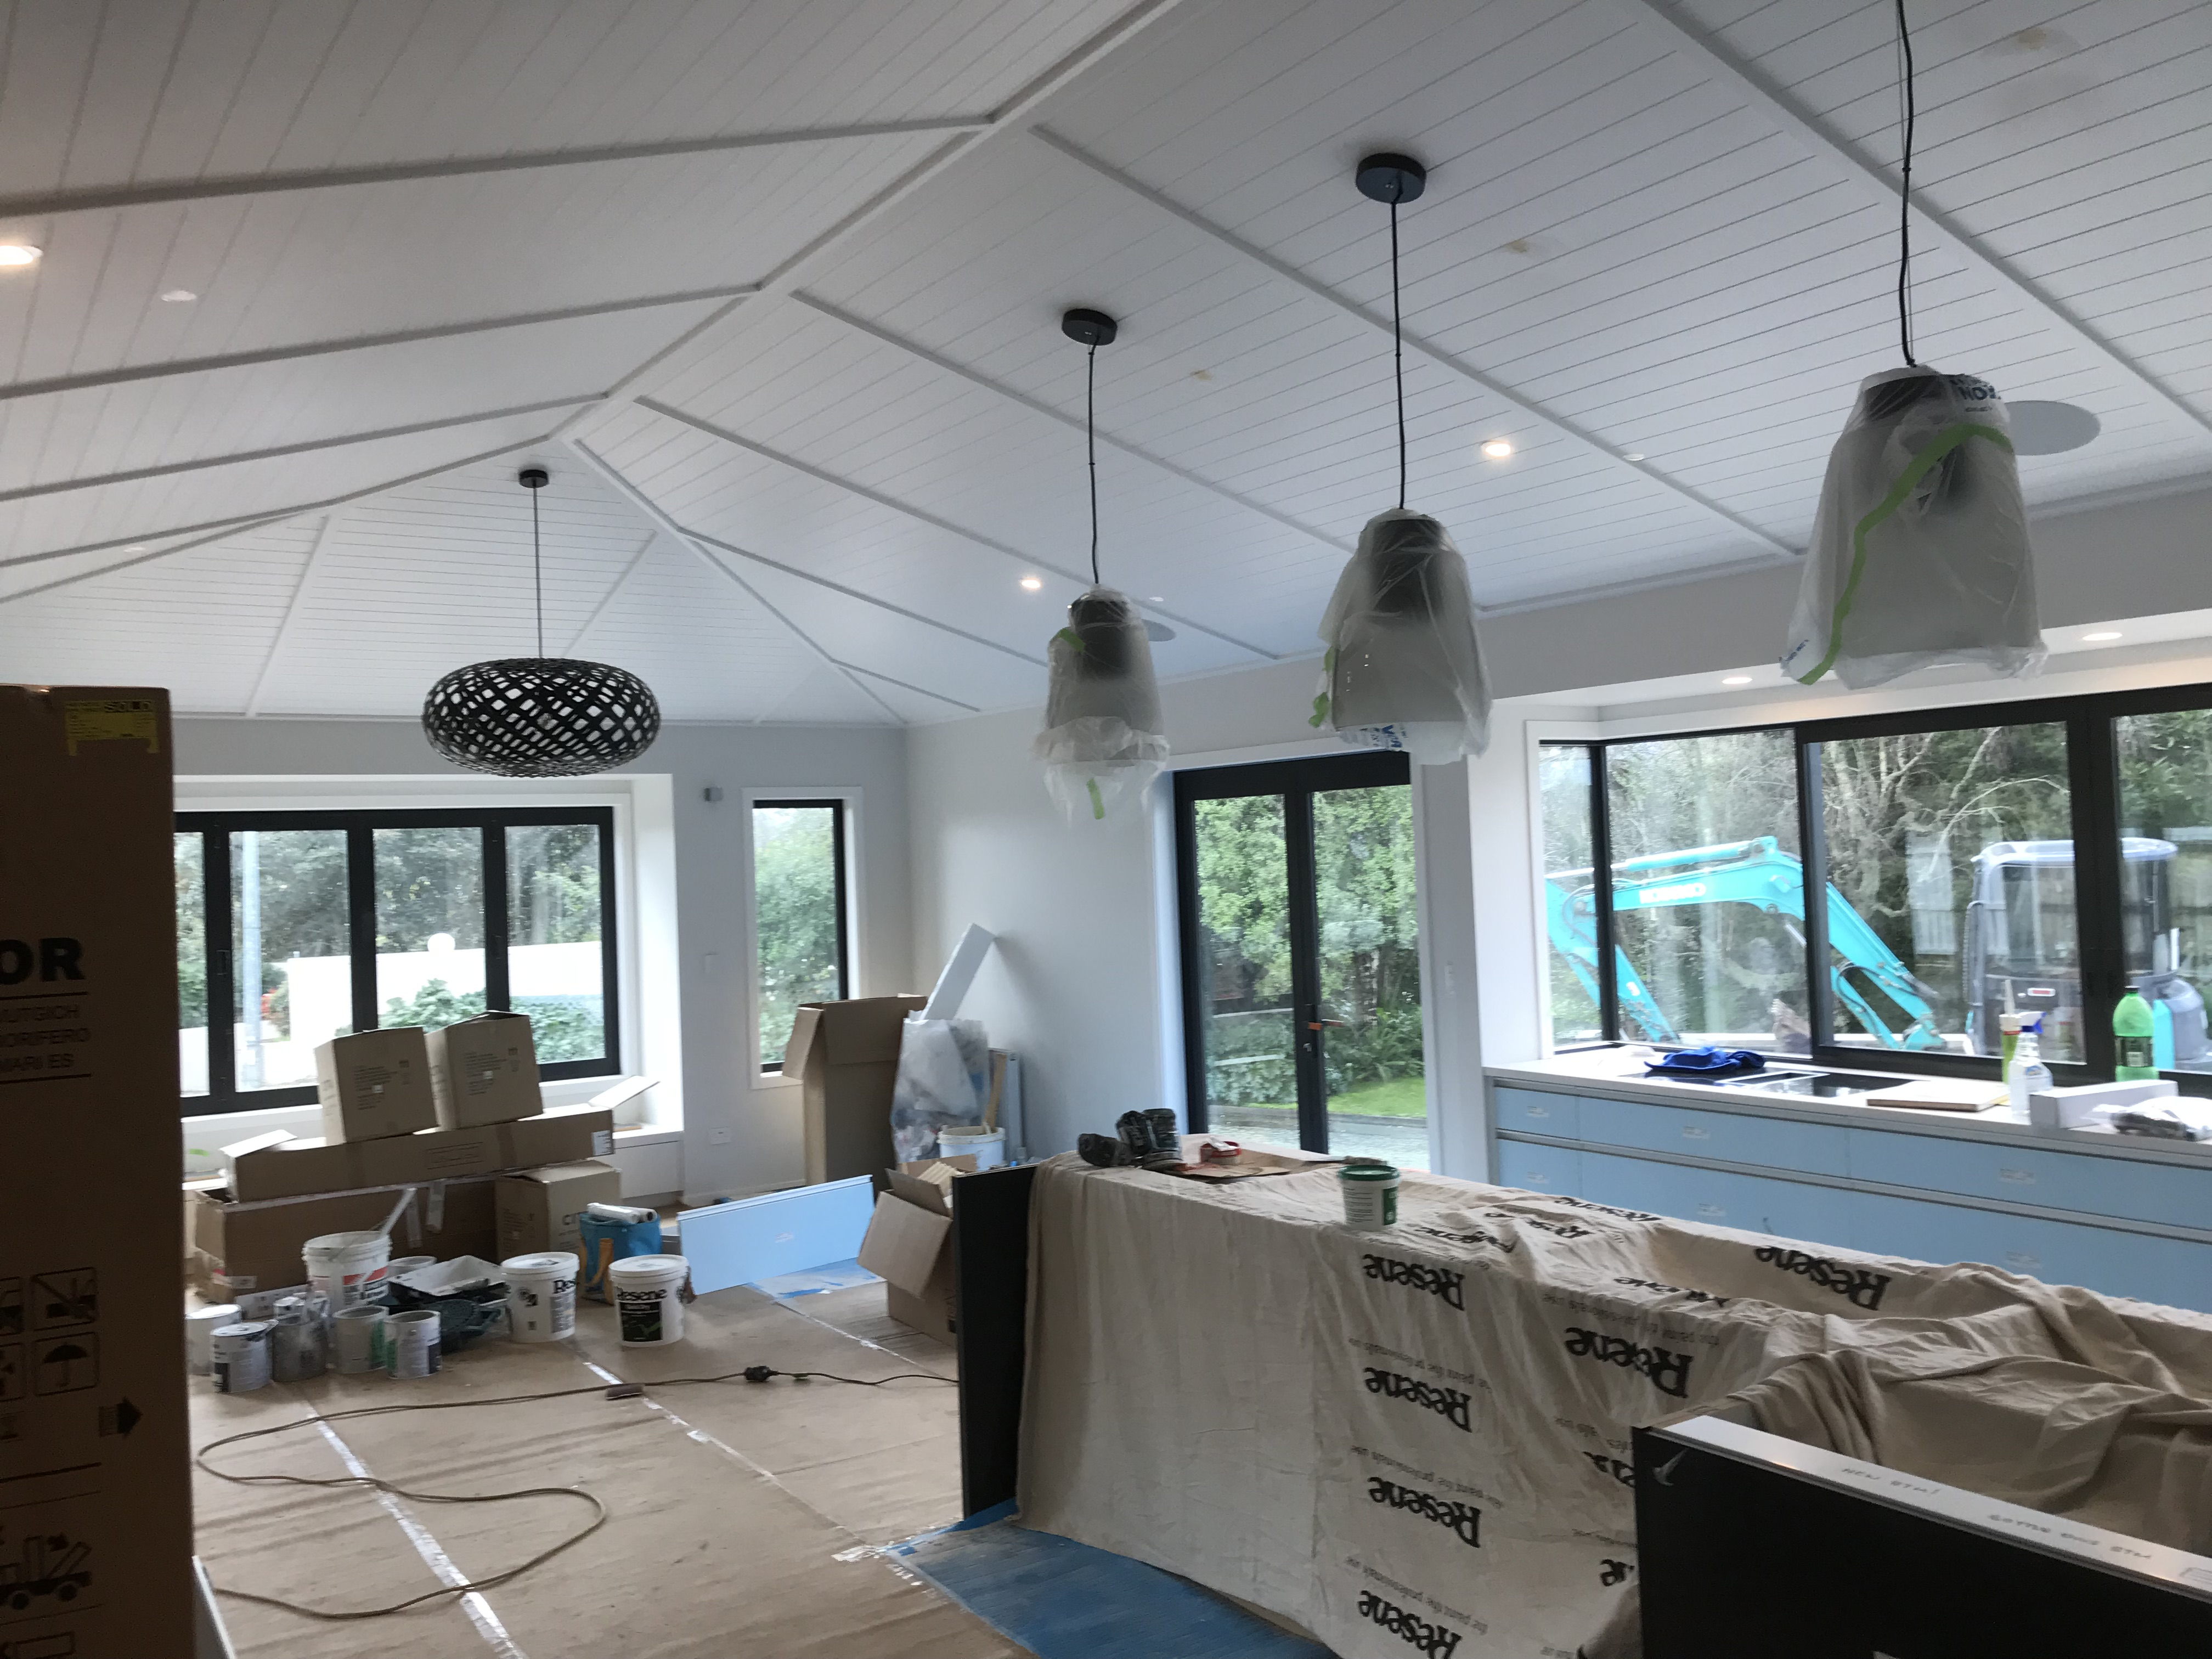 new home Interior painting and preparation by Fletcher Painting Ltd